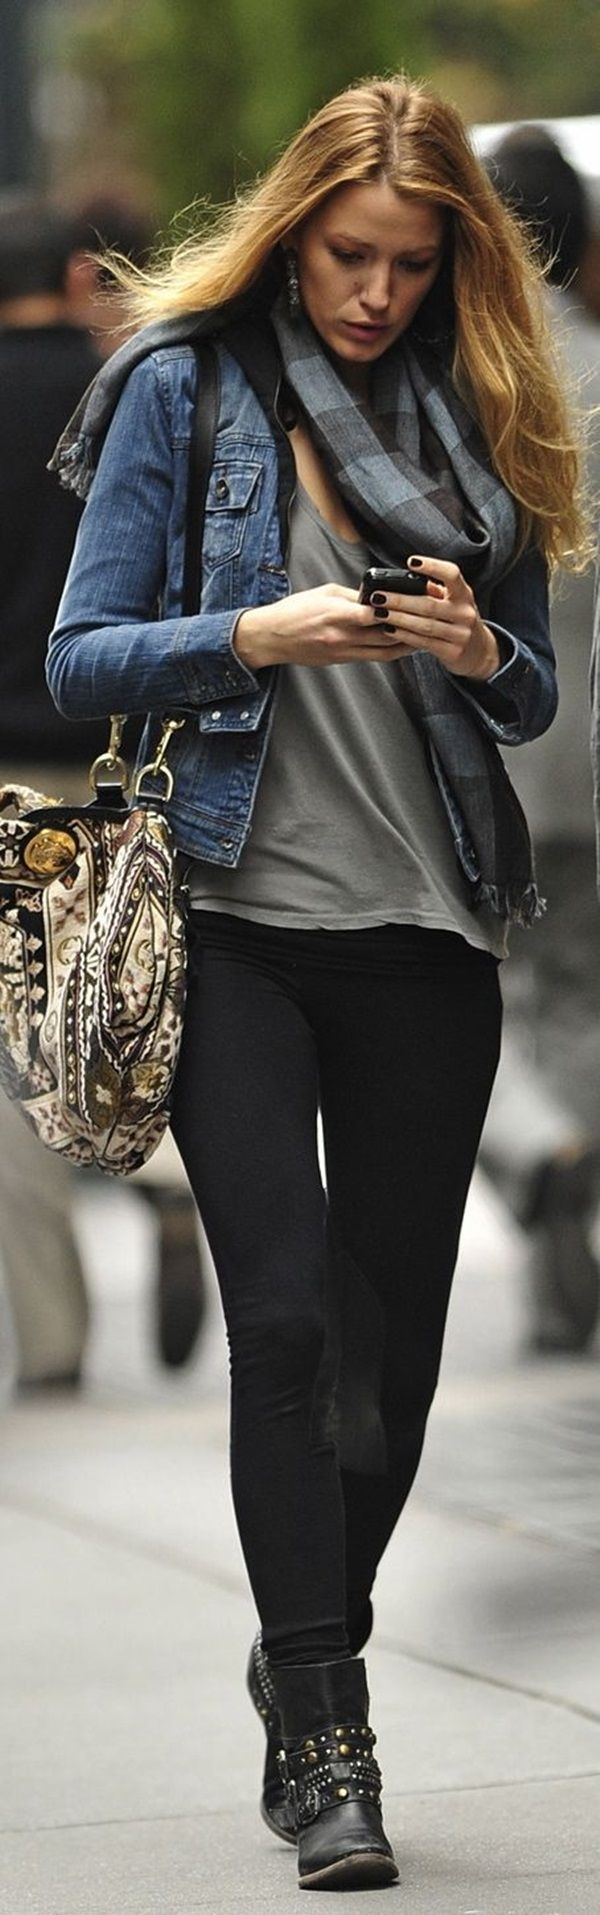 Best 25  Denim jacket womens ideas on Pinterest | Women's denim ...